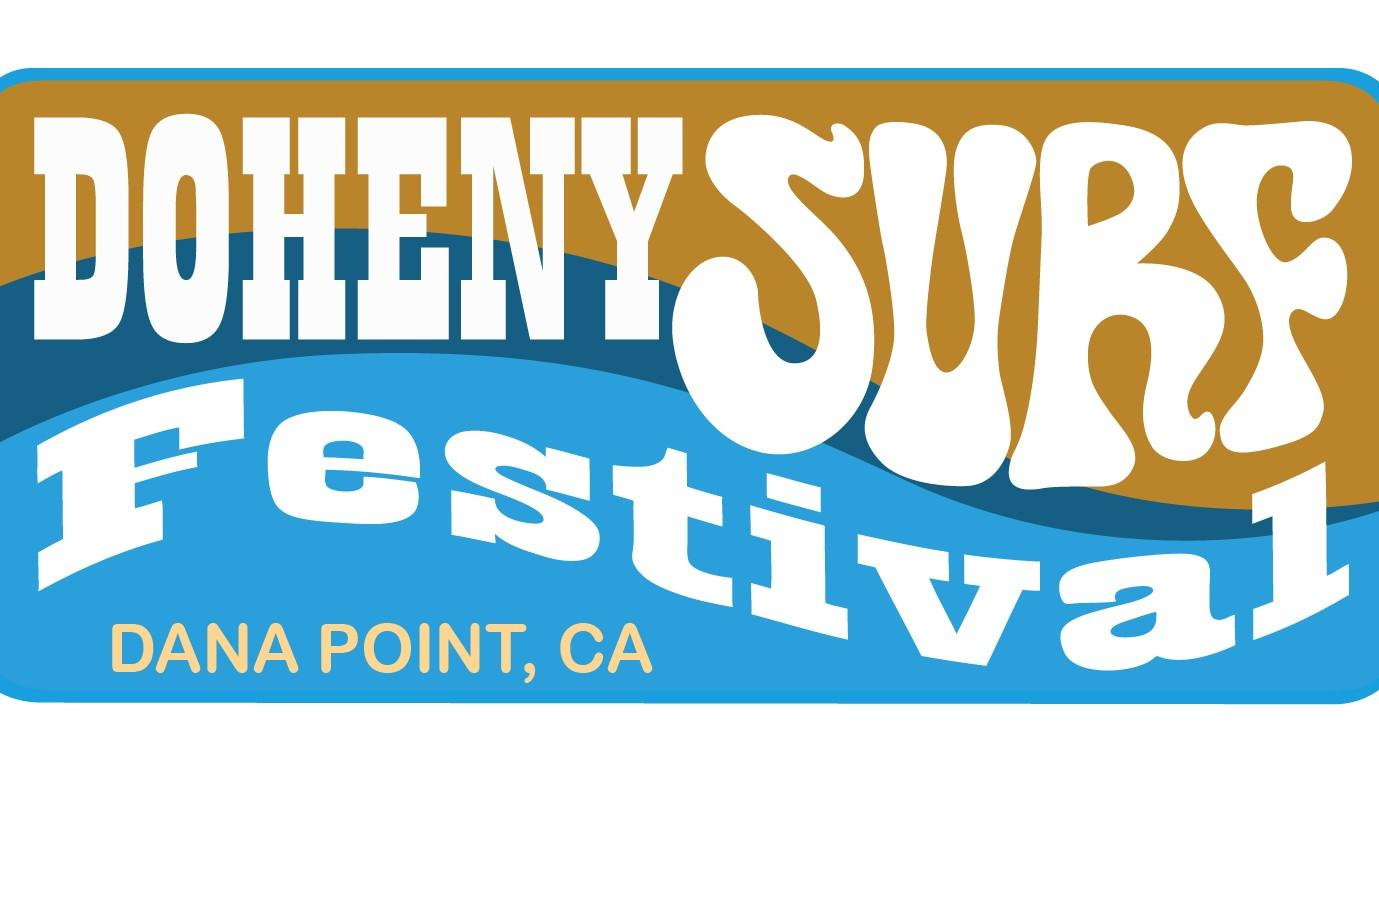 Lee and London Public Relations Client Doheny Surf Festival Returns to Southern California June 28-29